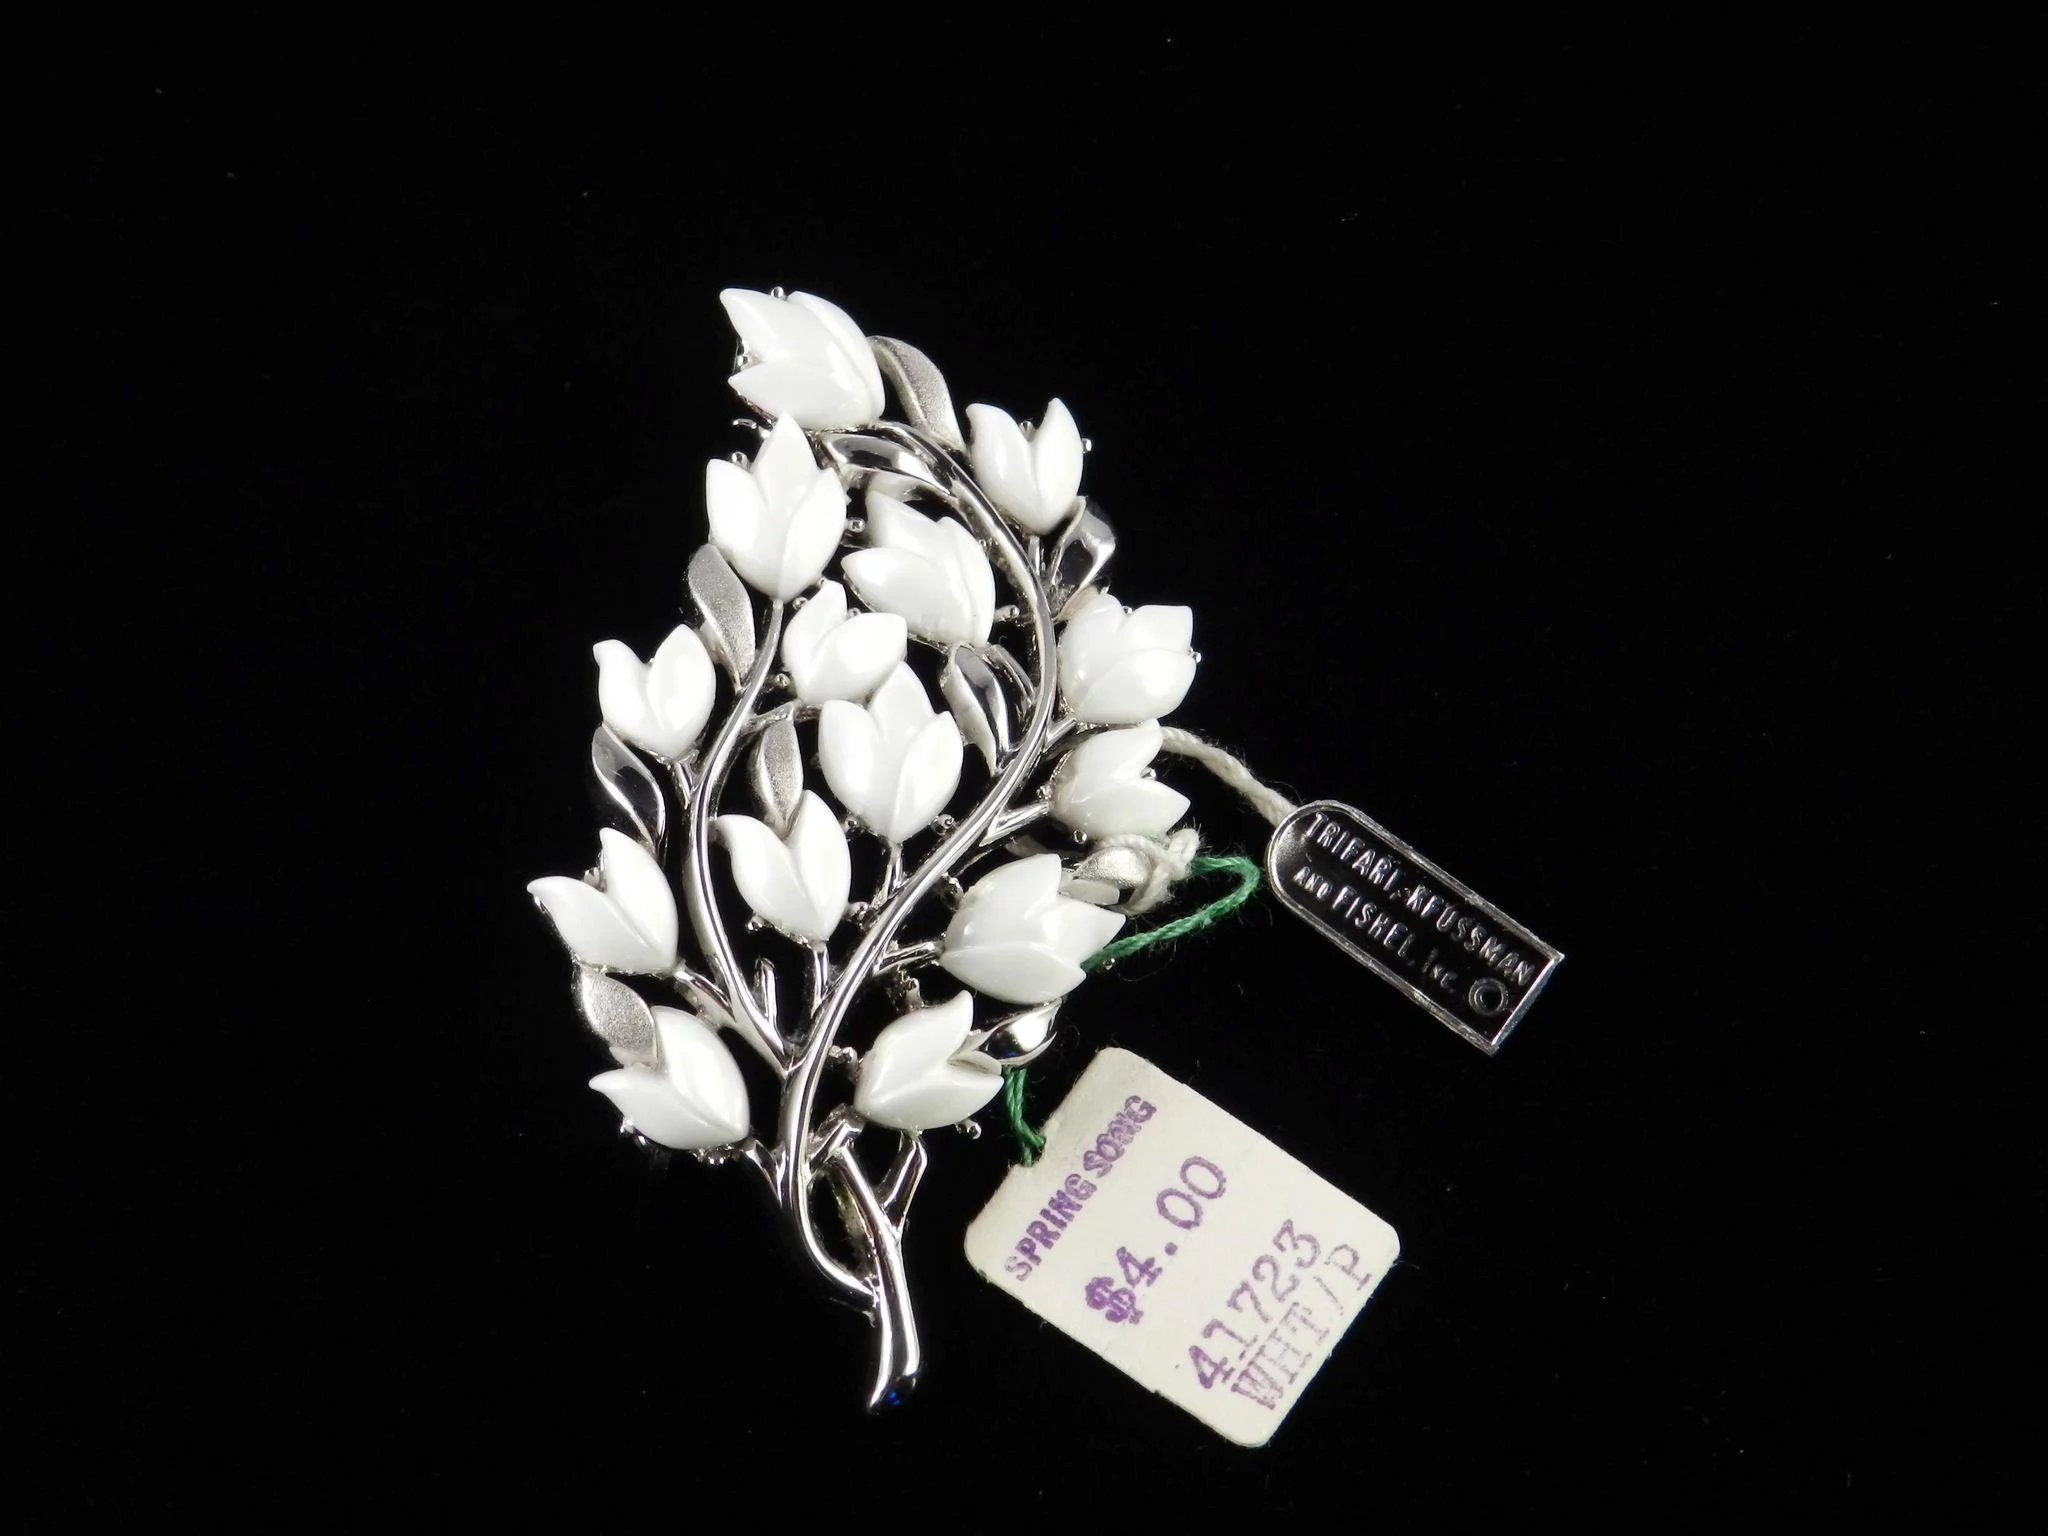 Trifari spring song thermoset flower branch brooch pin codys trifari spring song thermoset flower branch brooch pin click to expand mightylinksfo